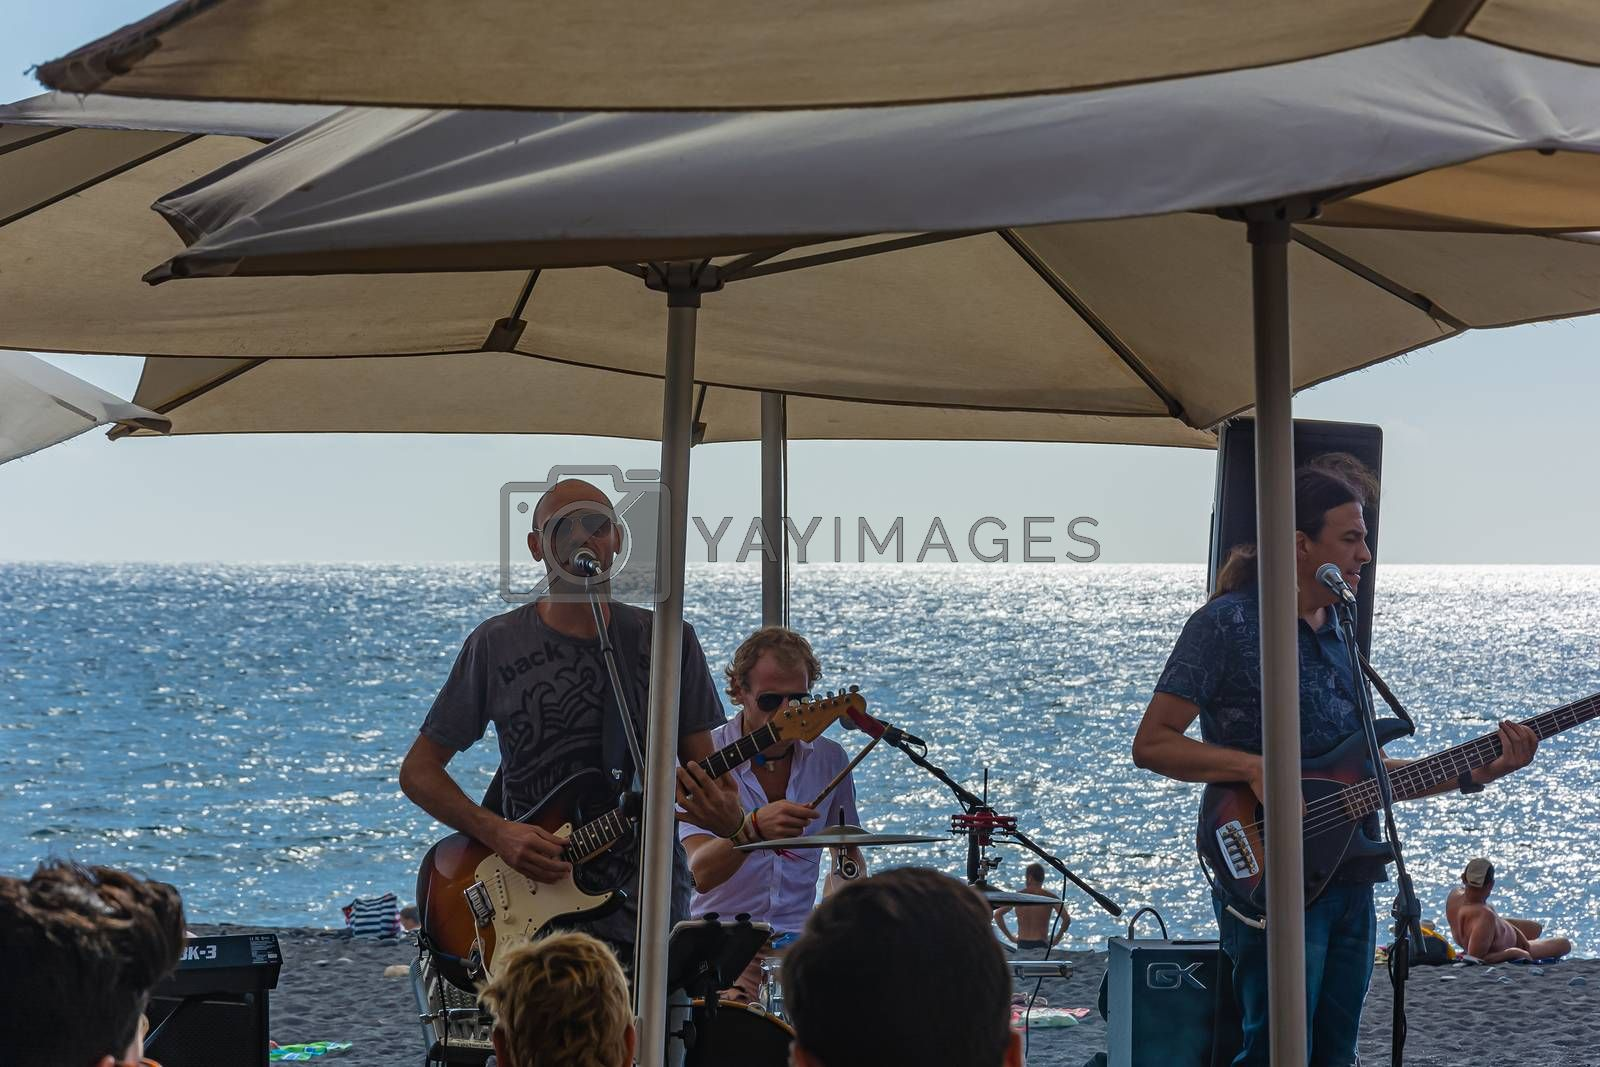 Spain, Tenerife - 09/17/2016: performance by a musical group on the ocean. Stock photography